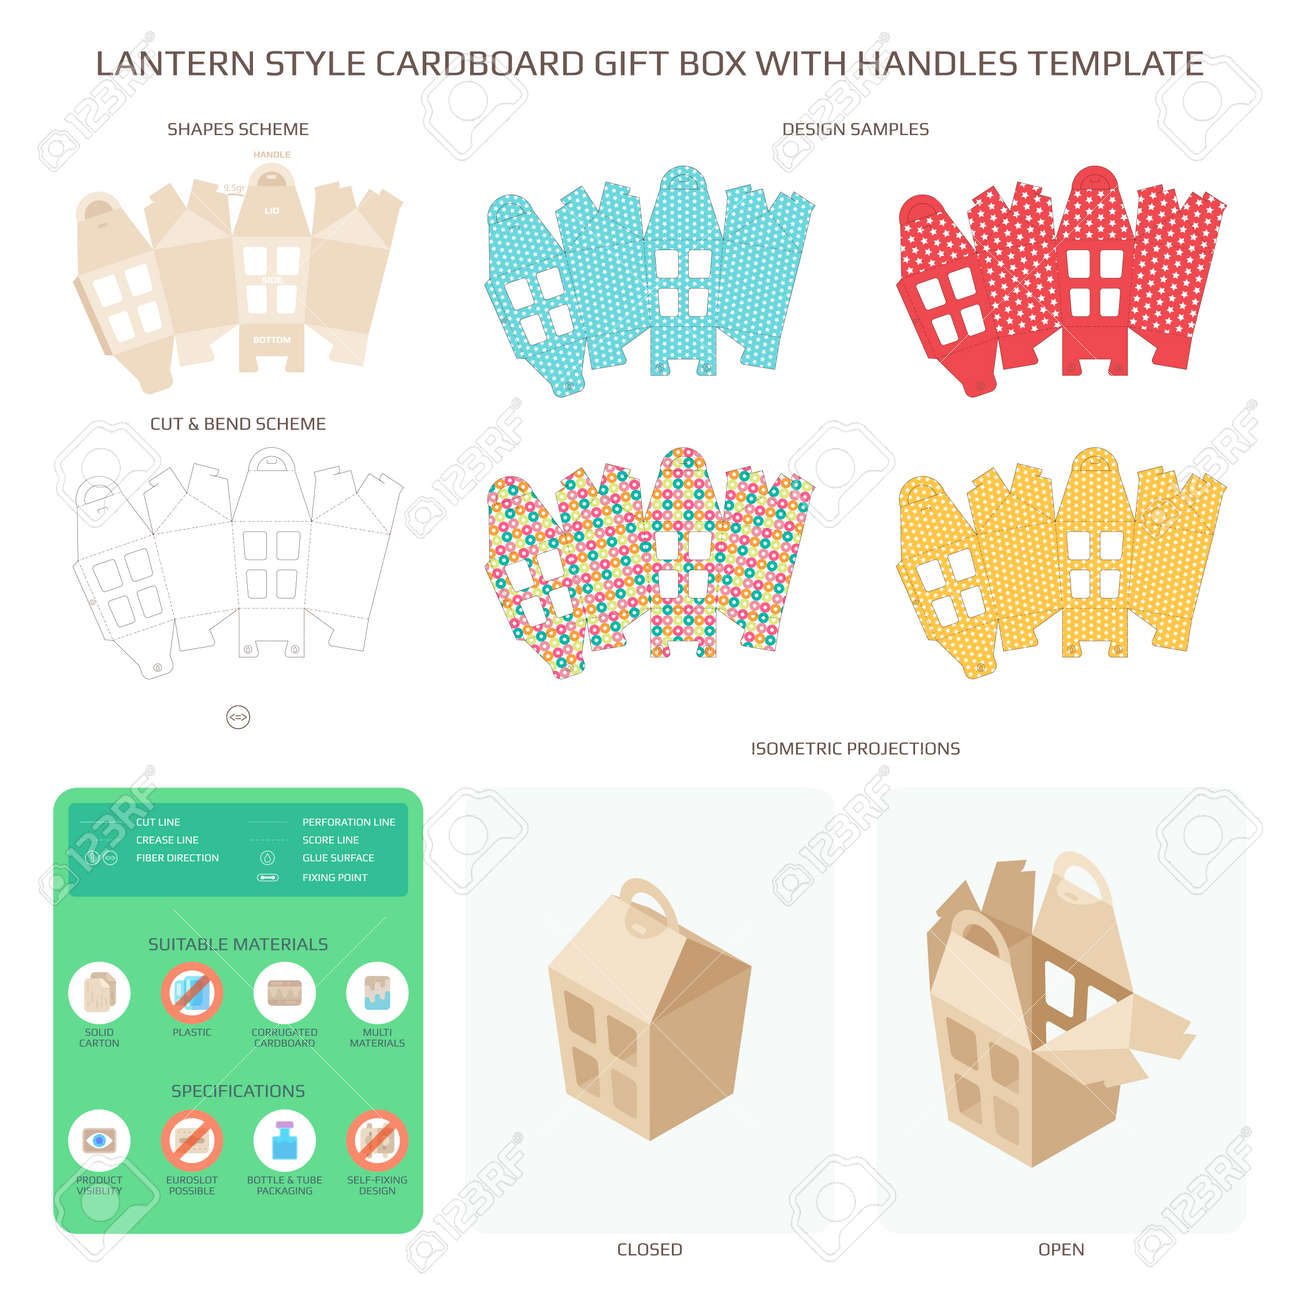 Vector Lantern Style Cardboard Gift Box With Handles Templates ... for cardboard lantern template  45ifm